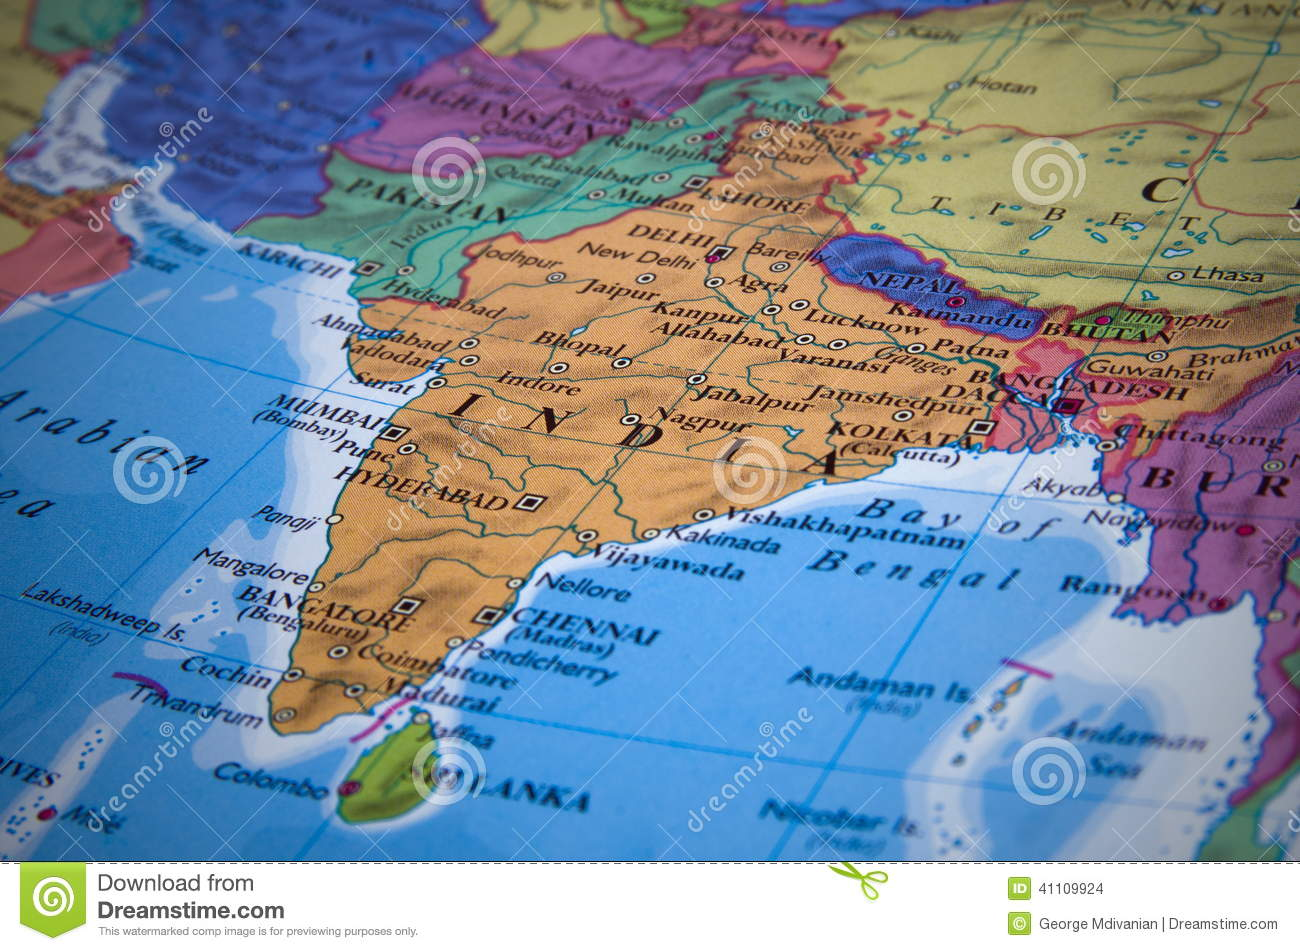 India map stock photo image of state continent blue 41109924 gumiabroncs Image collections